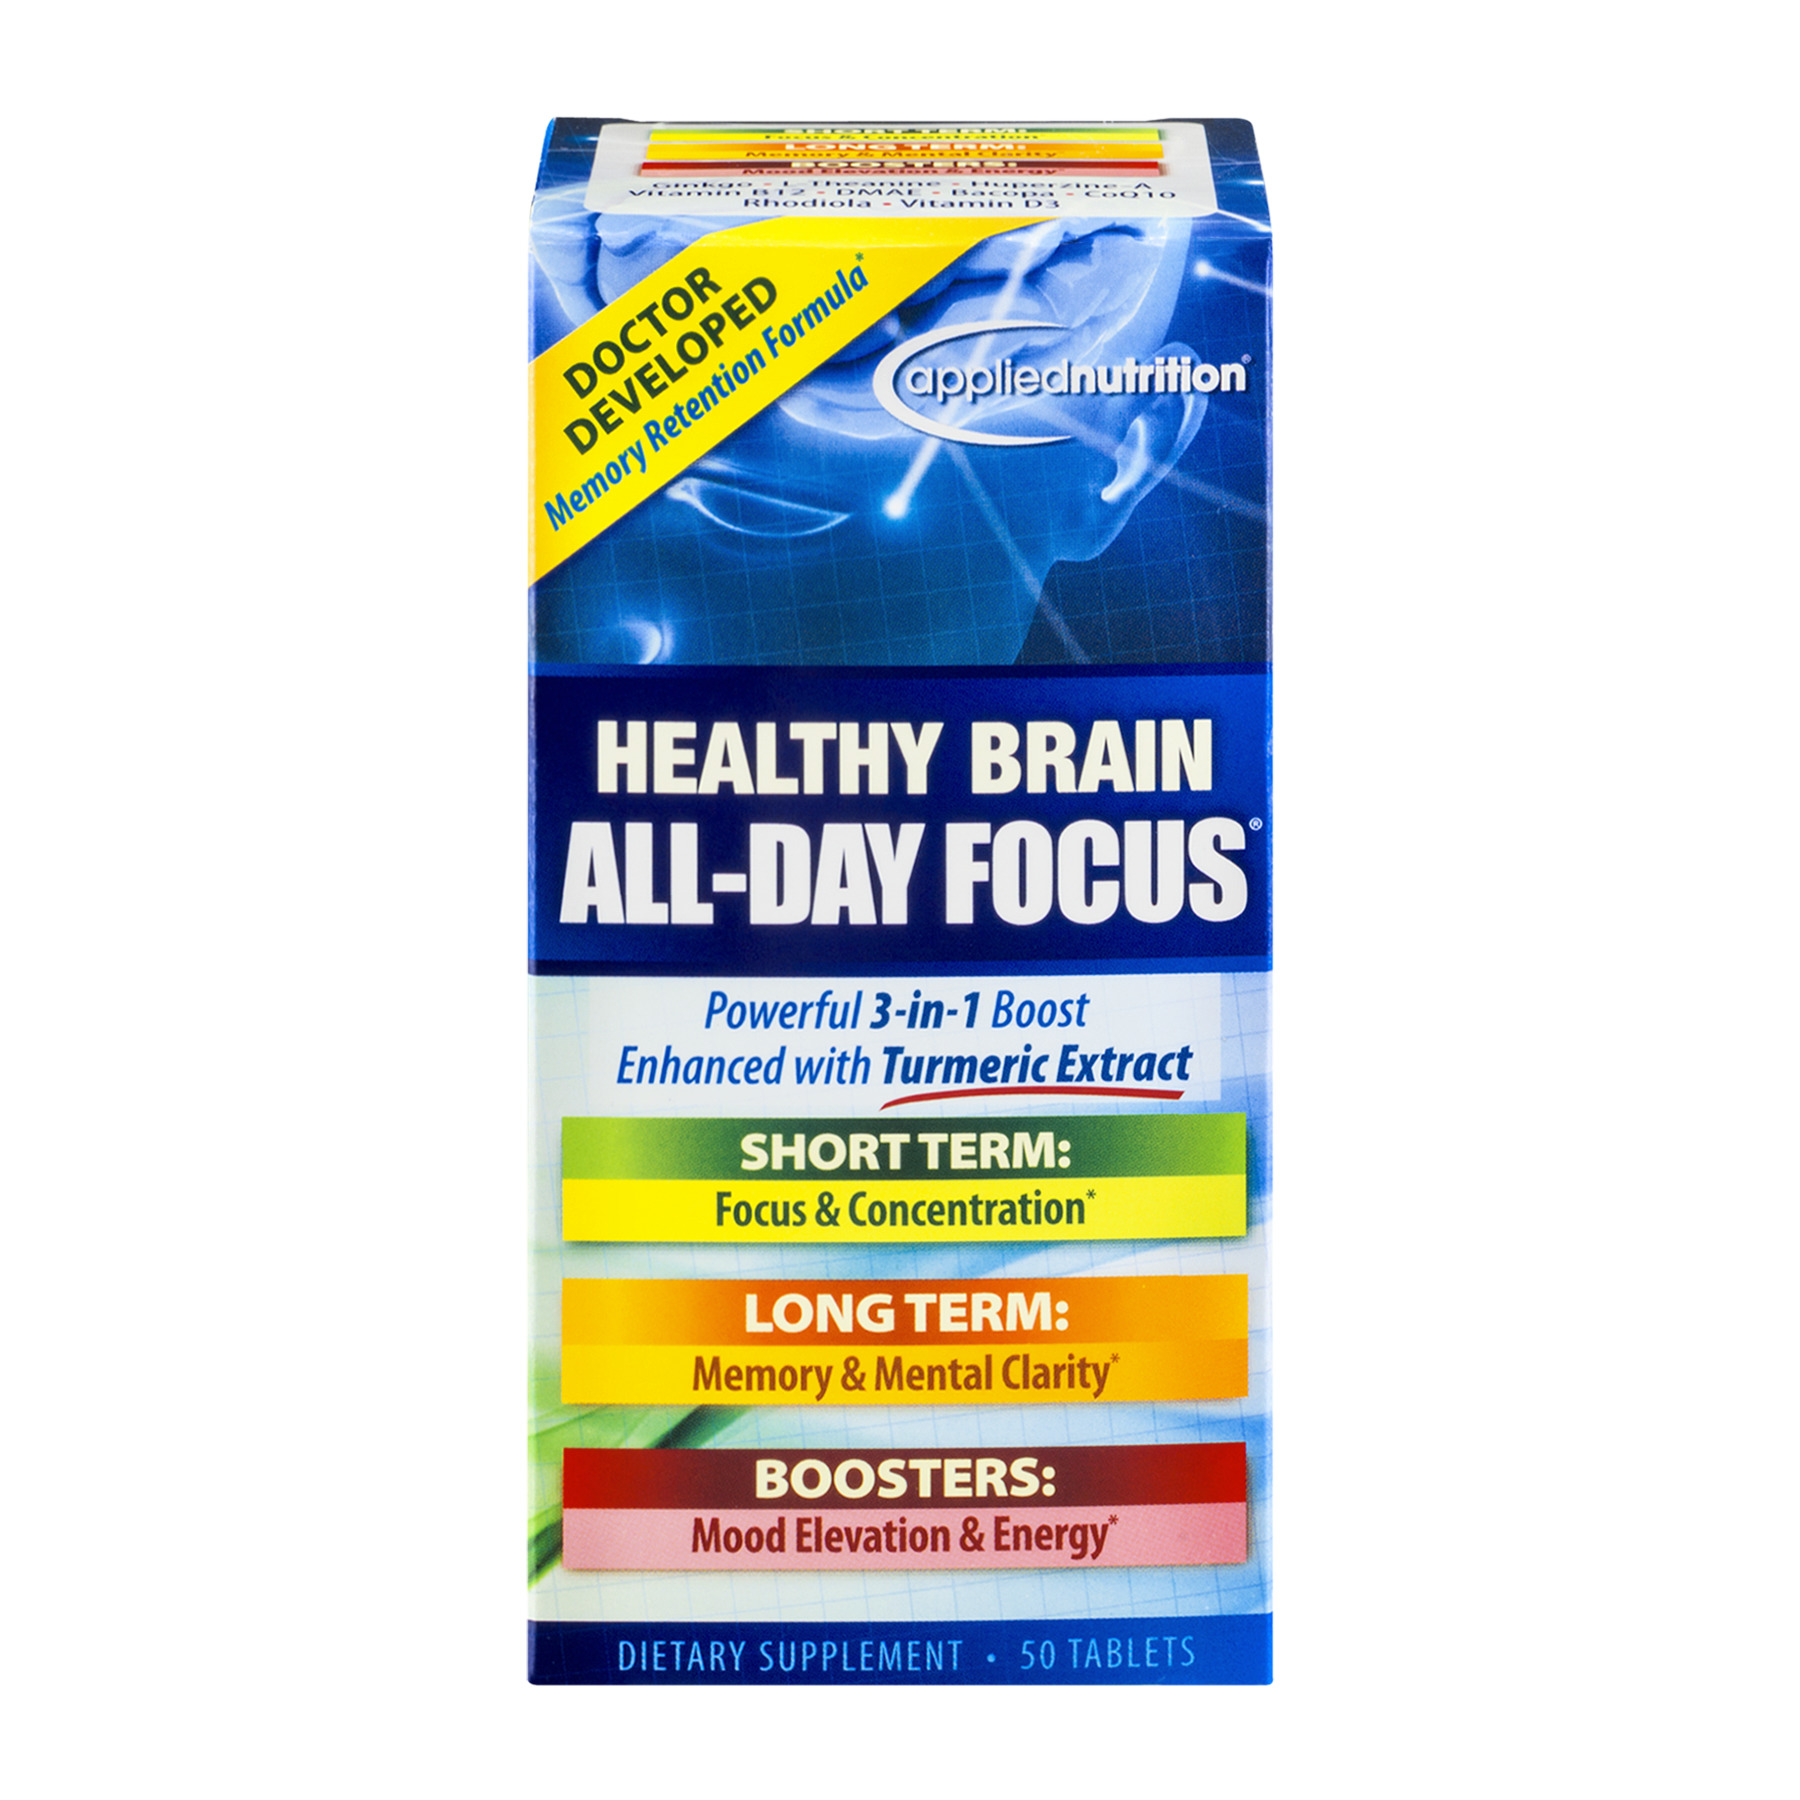 Applied Nutrition Healthy Brain All-Day Focus Dietary Supsplement Tablets - 50 CT50.0 CT